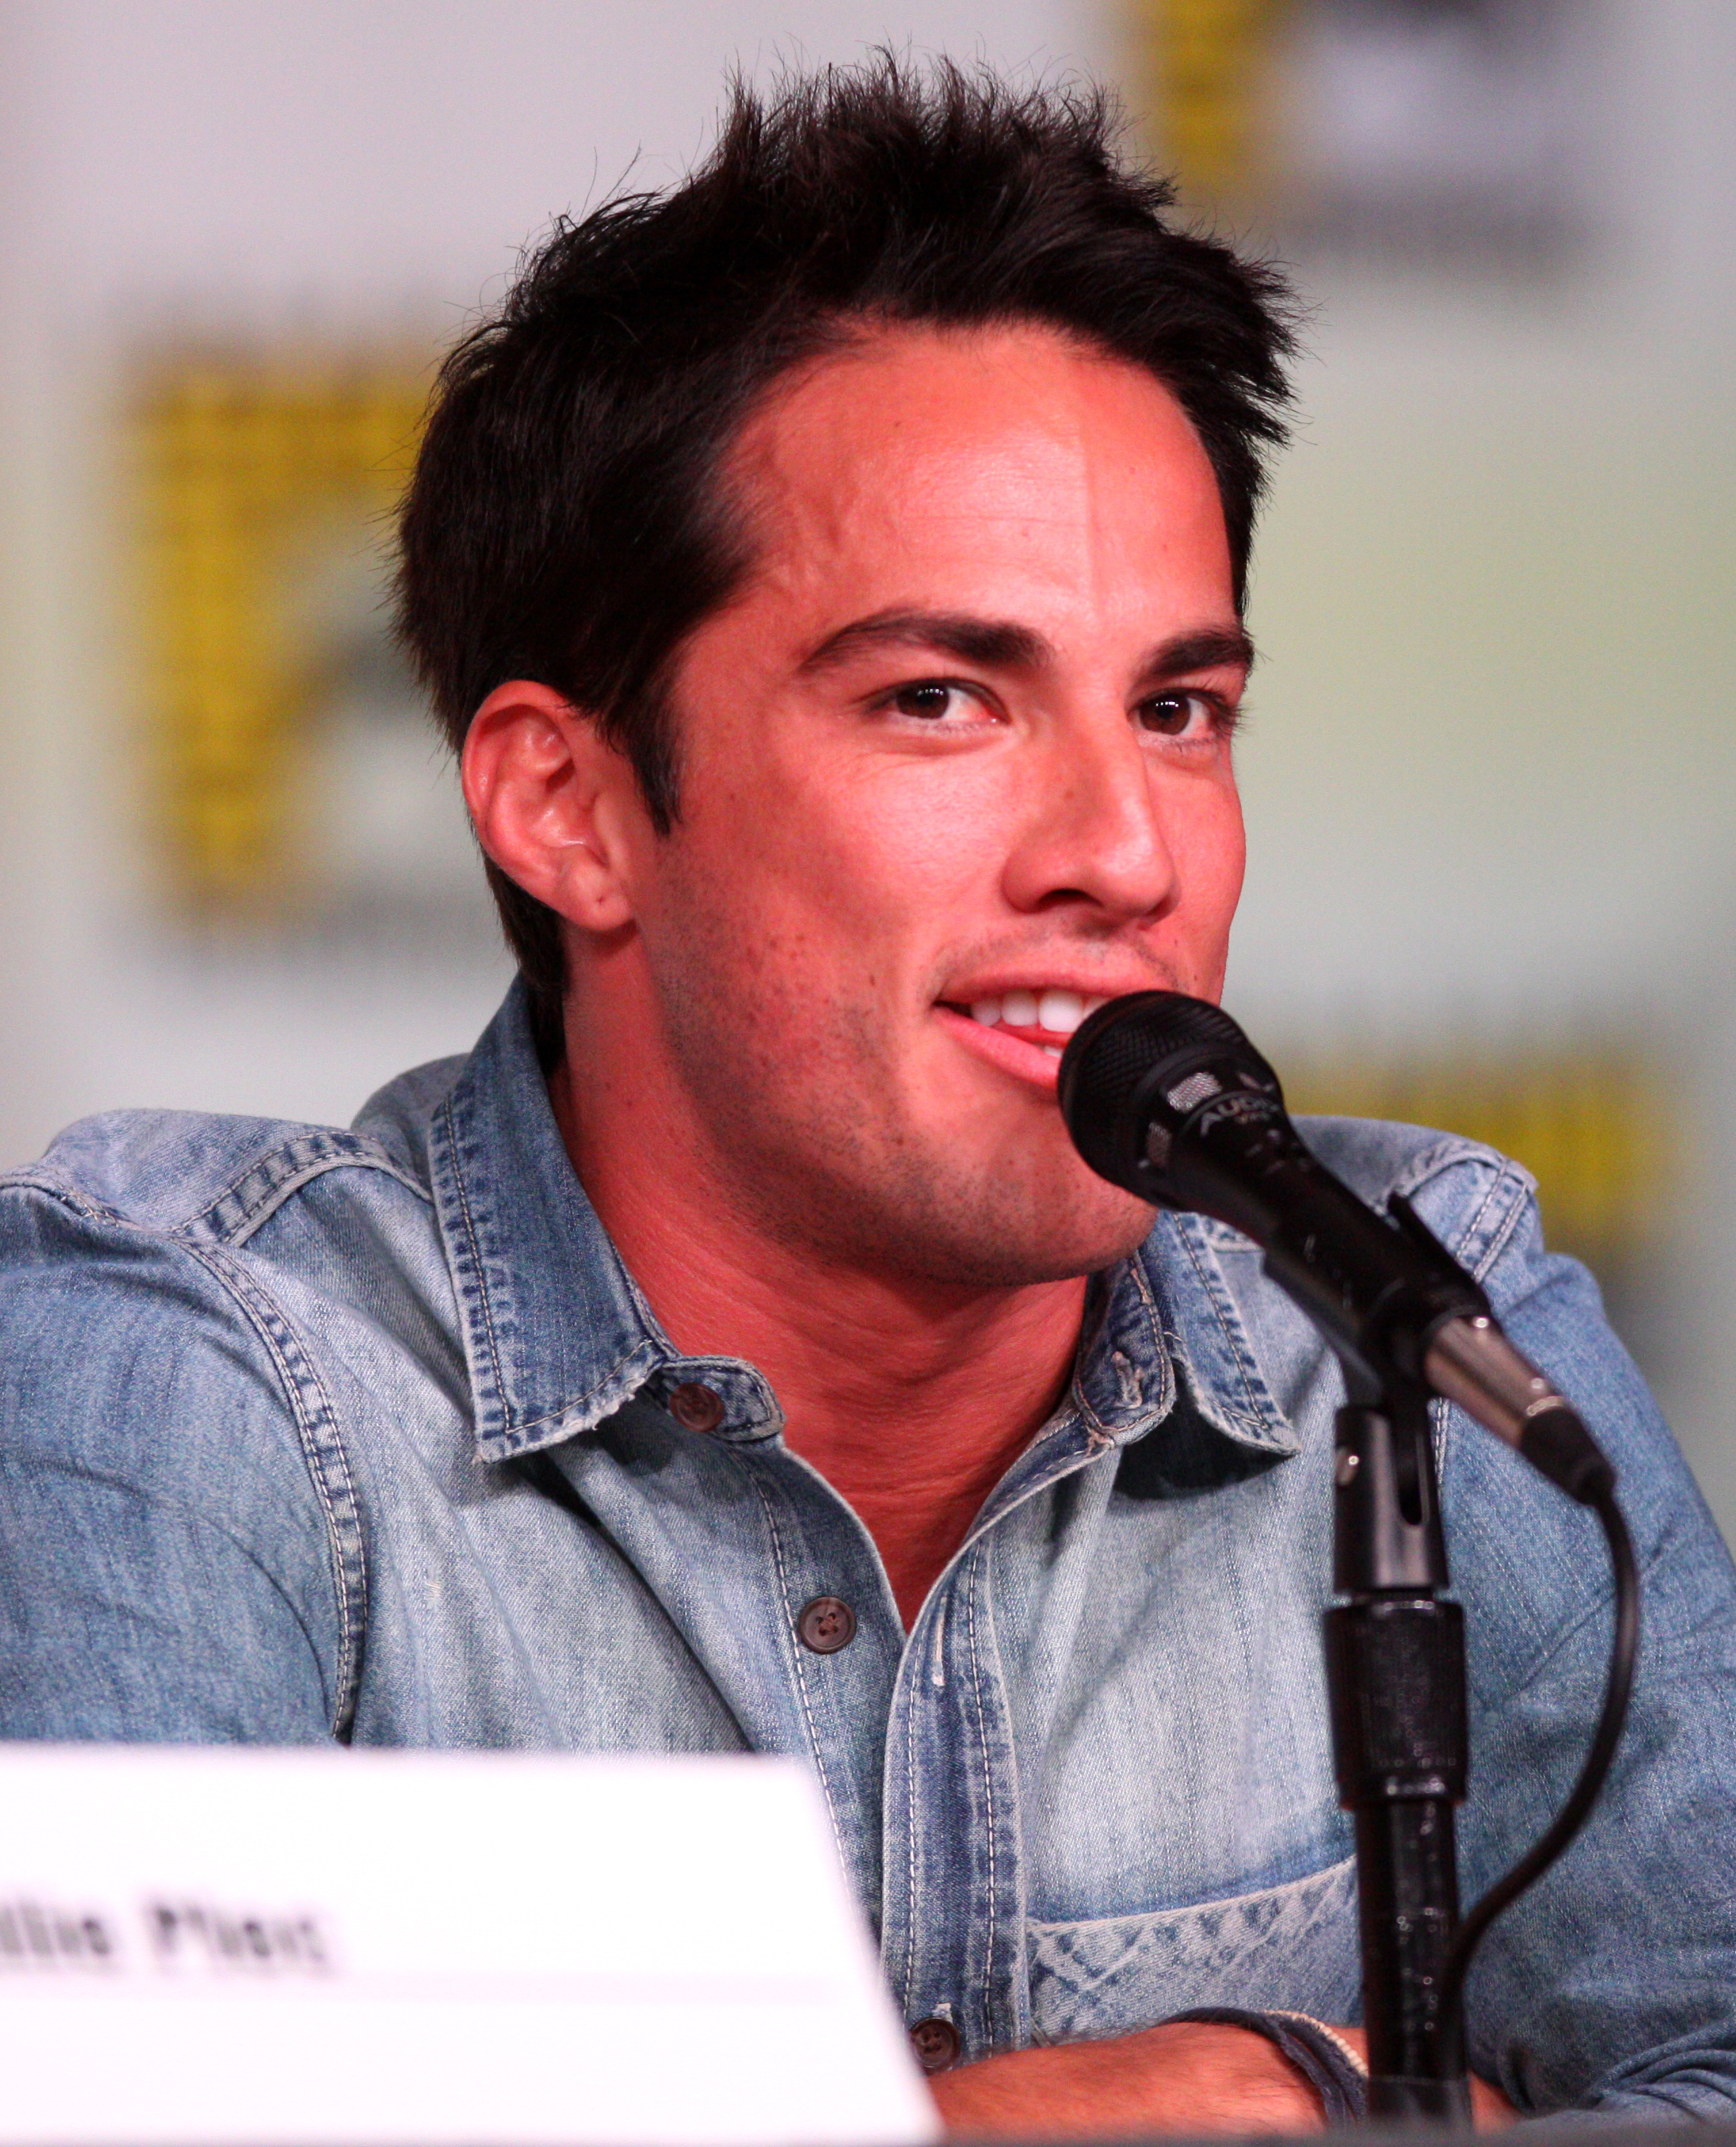 The 33-year old son of father (?) and mother(?) Michael Trevino in 2018 photo. Michael Trevino earned a  million dollar salary - leaving the net worth at 2 million in 2018